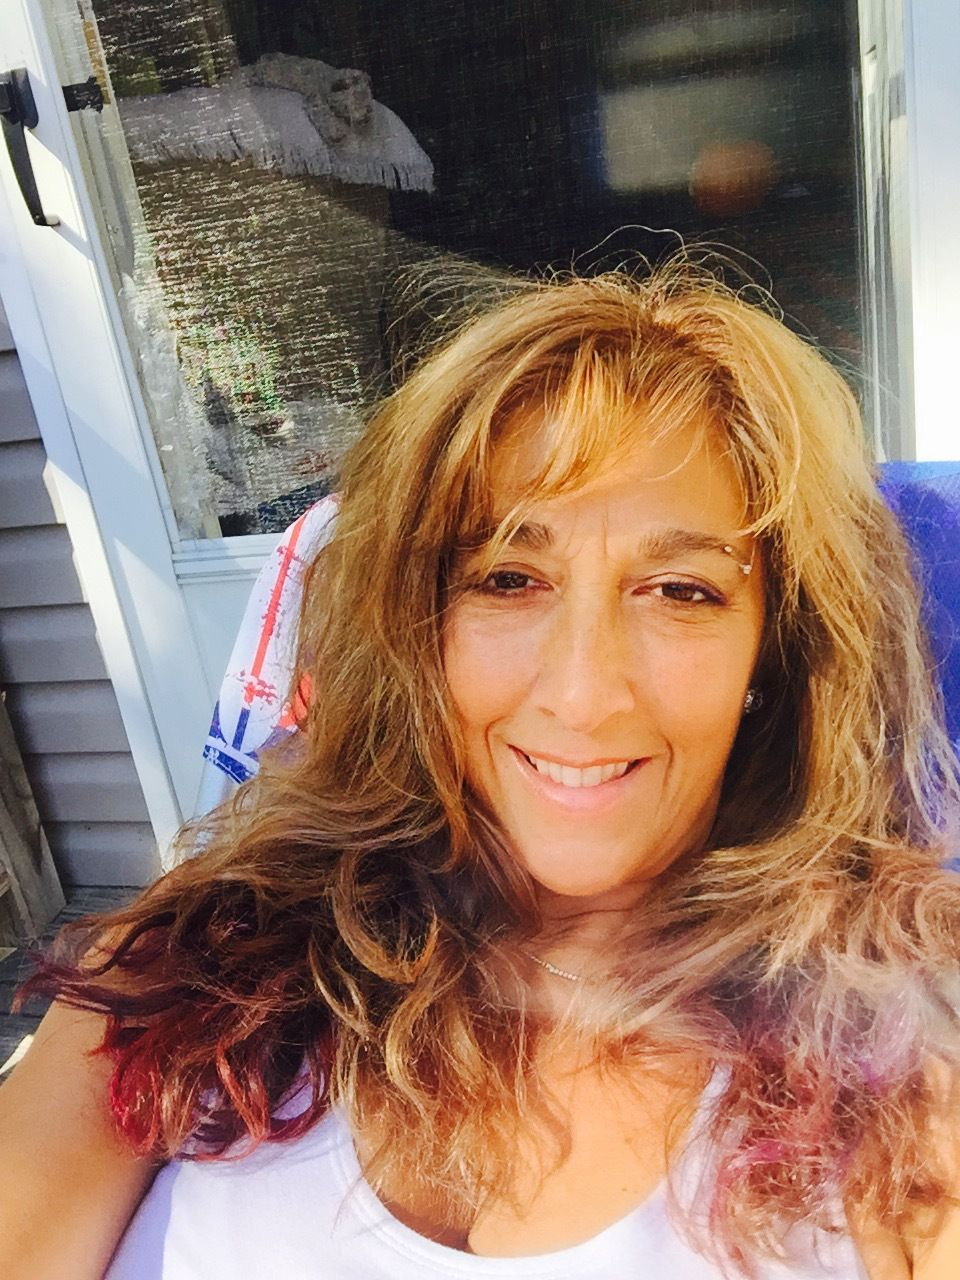 hispanic single women in new hampshire Meet single hispanic women in contoocook are you searching for a single hispanic woman to tie the knot with or would you simply like someone new to go to a candy.